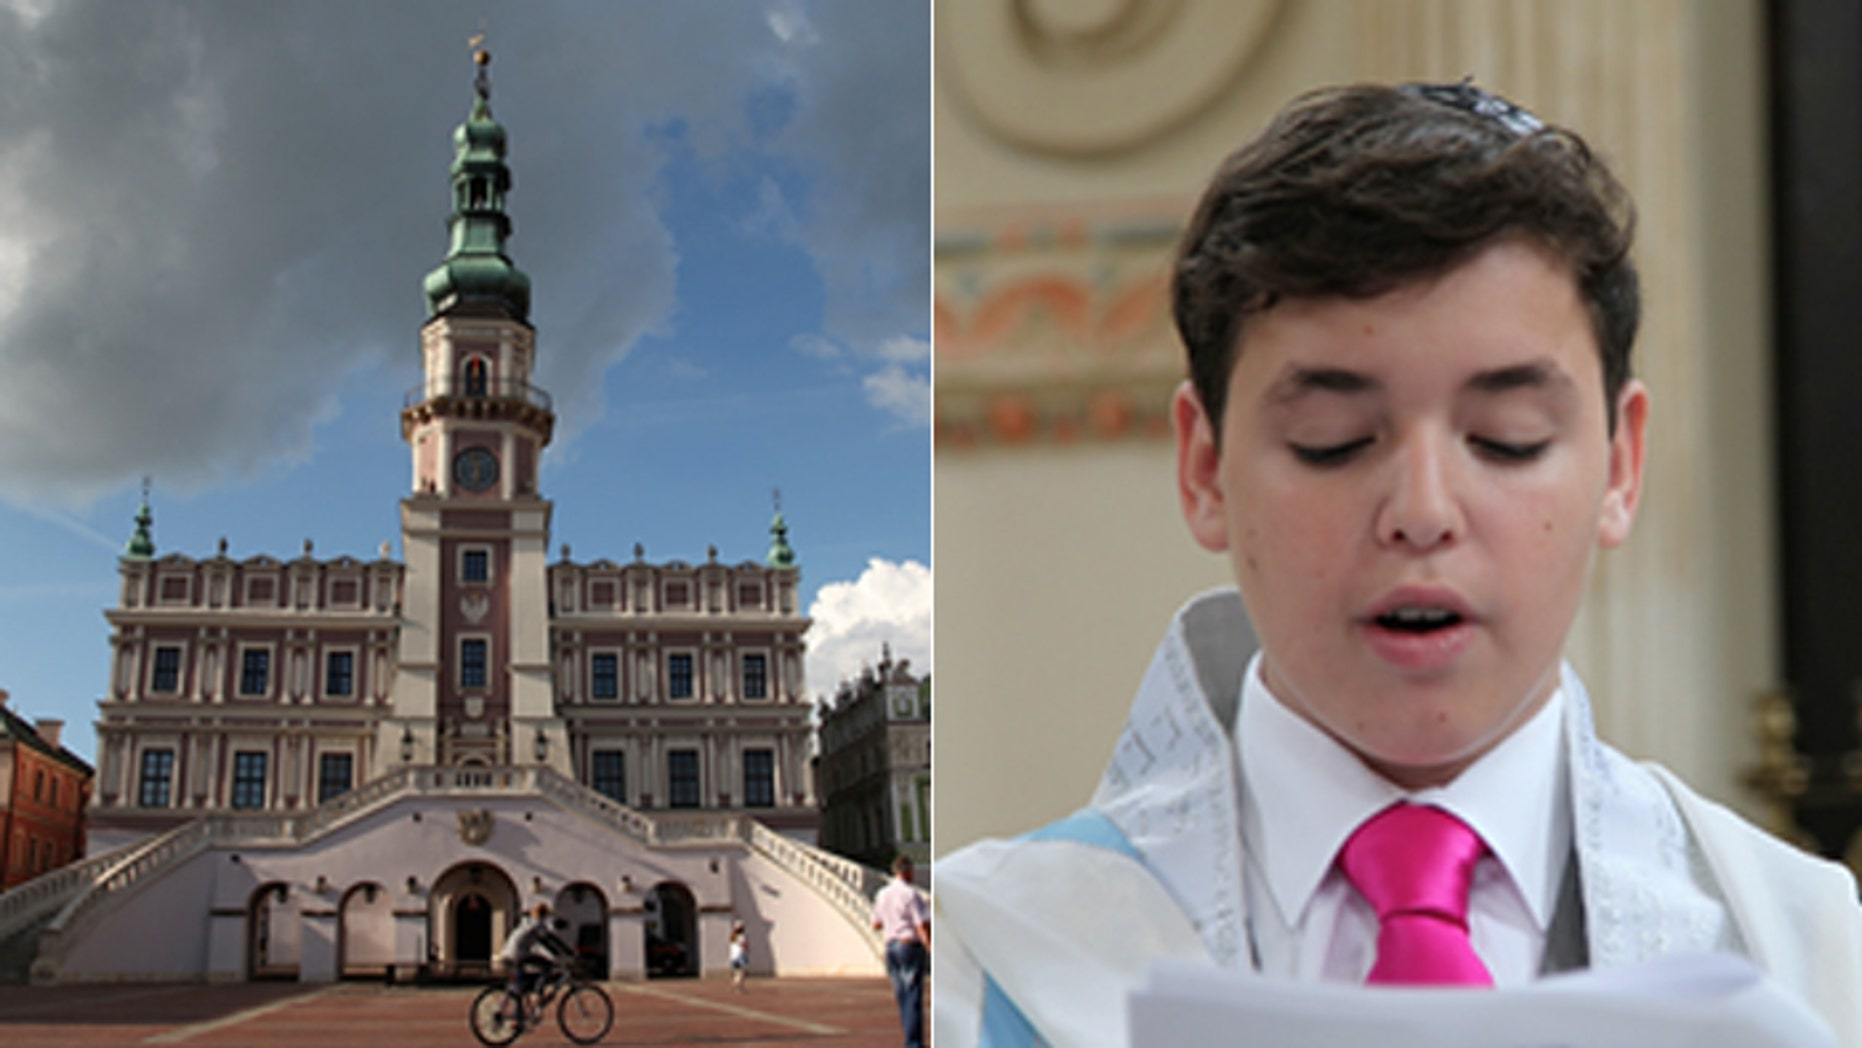 Zamosc Synagogue in Poland had not hosted a Jewish ceremony in more than 75 years, until New Yorker Jacob Wisnik traveled to his grandfather's hometown for his Bar Mitzvah.